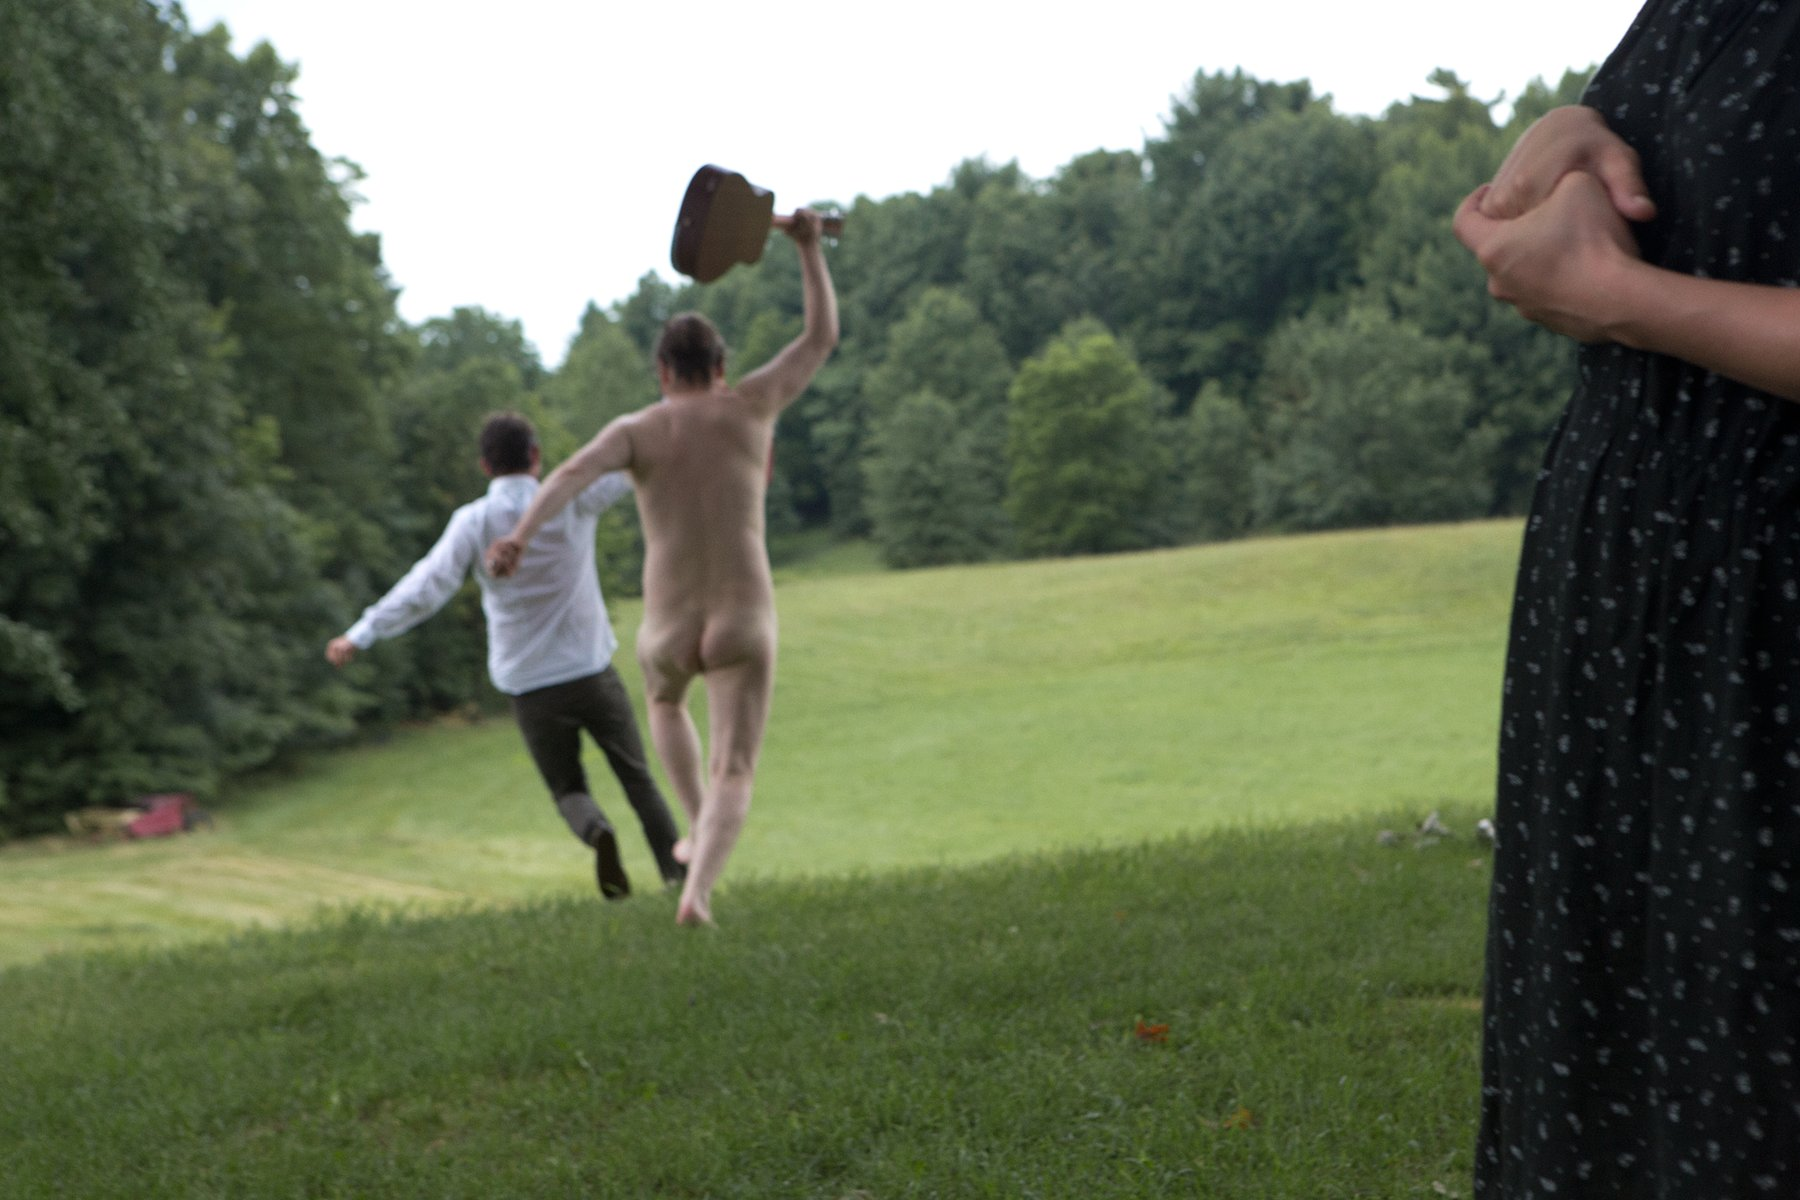 A naked Caucasian man holding a guitar chases another clothed man through a green field, Kjartansson